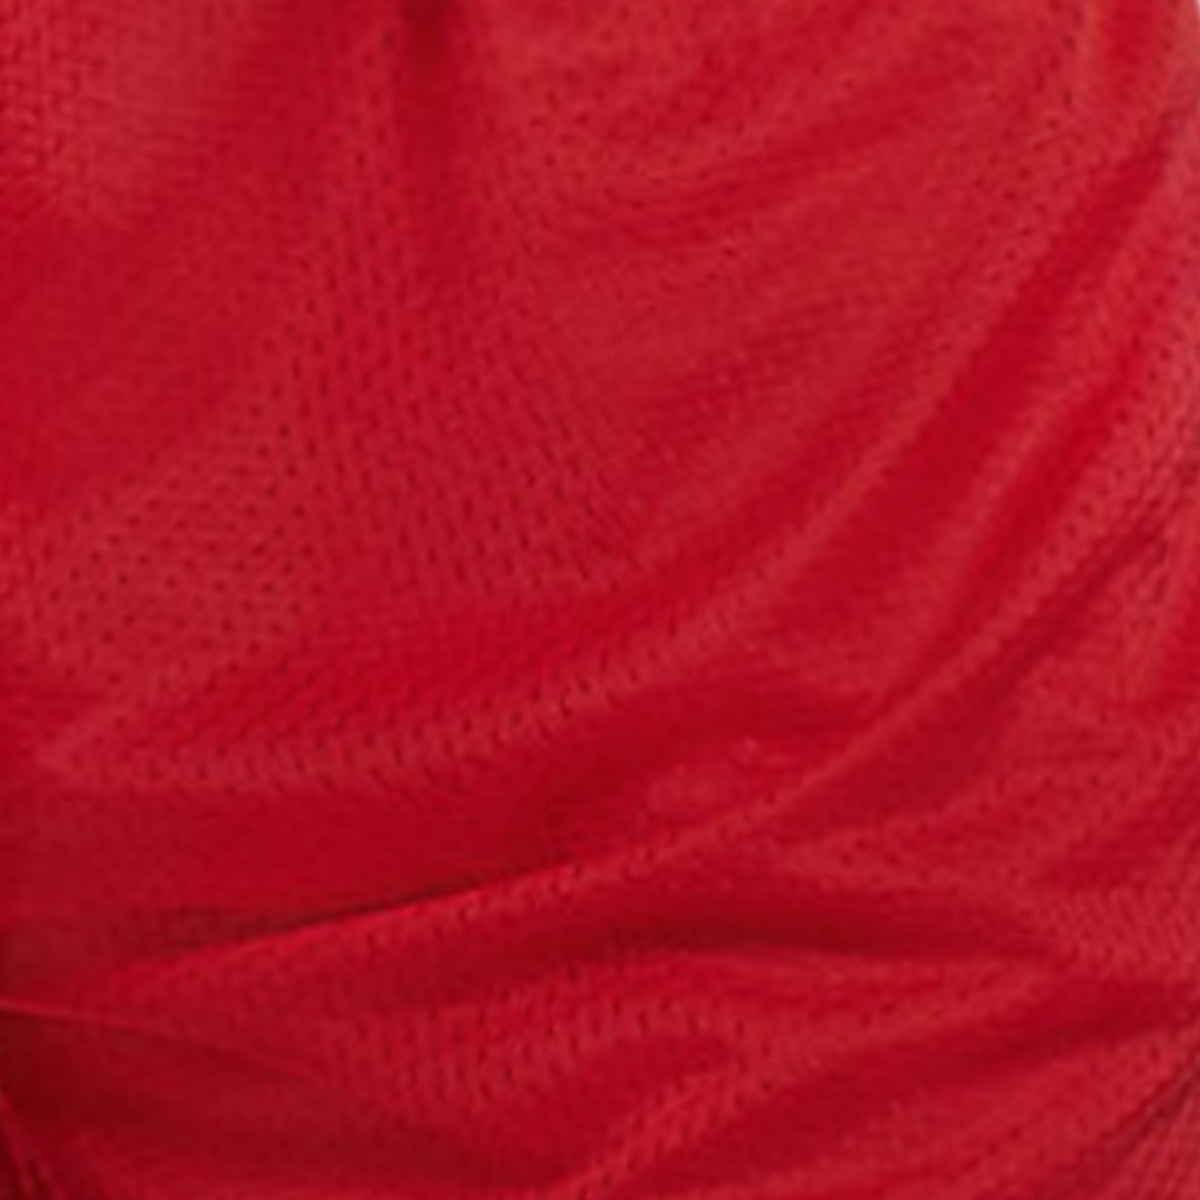 Russell-Athletic-Mens-Shorts-With-Pockets-Mesh-Moisture-Wicking-Gym-Activewear thumbnail 7